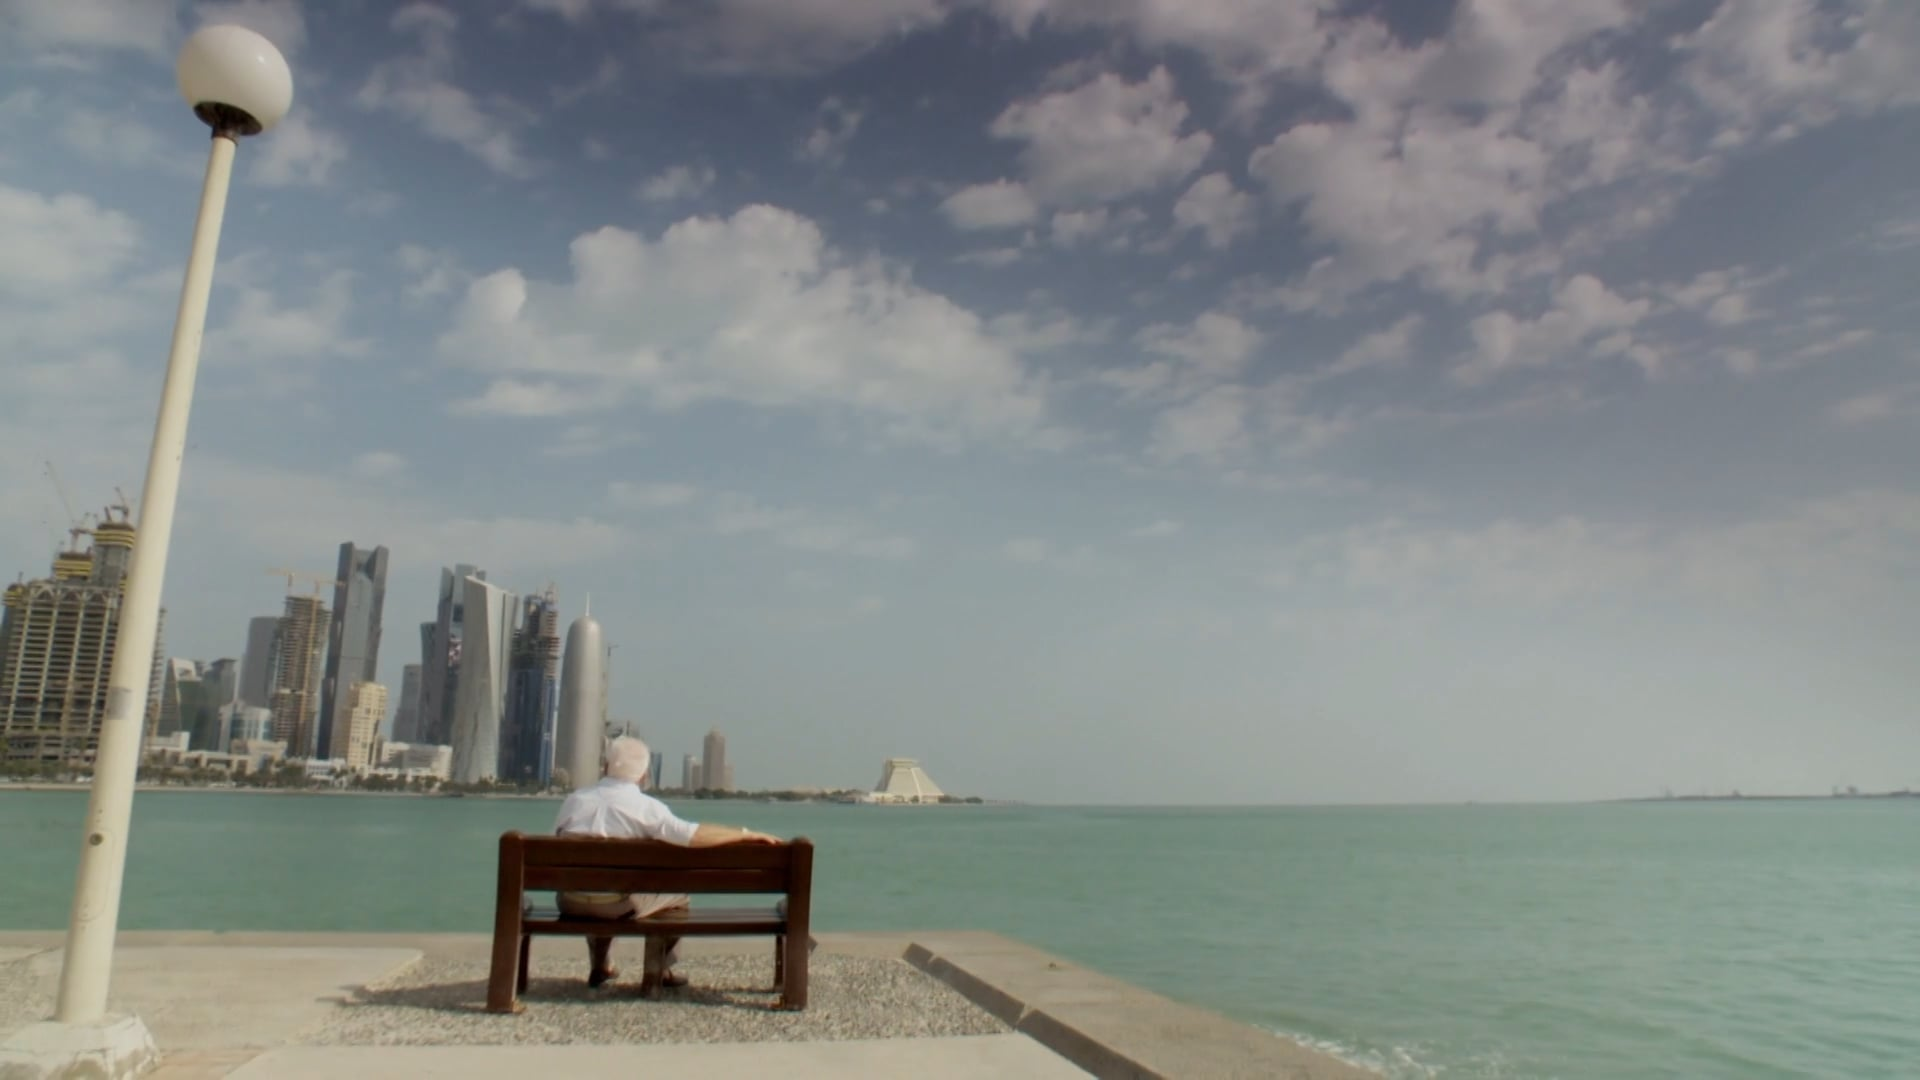 IN THE SHADES OF DOHA